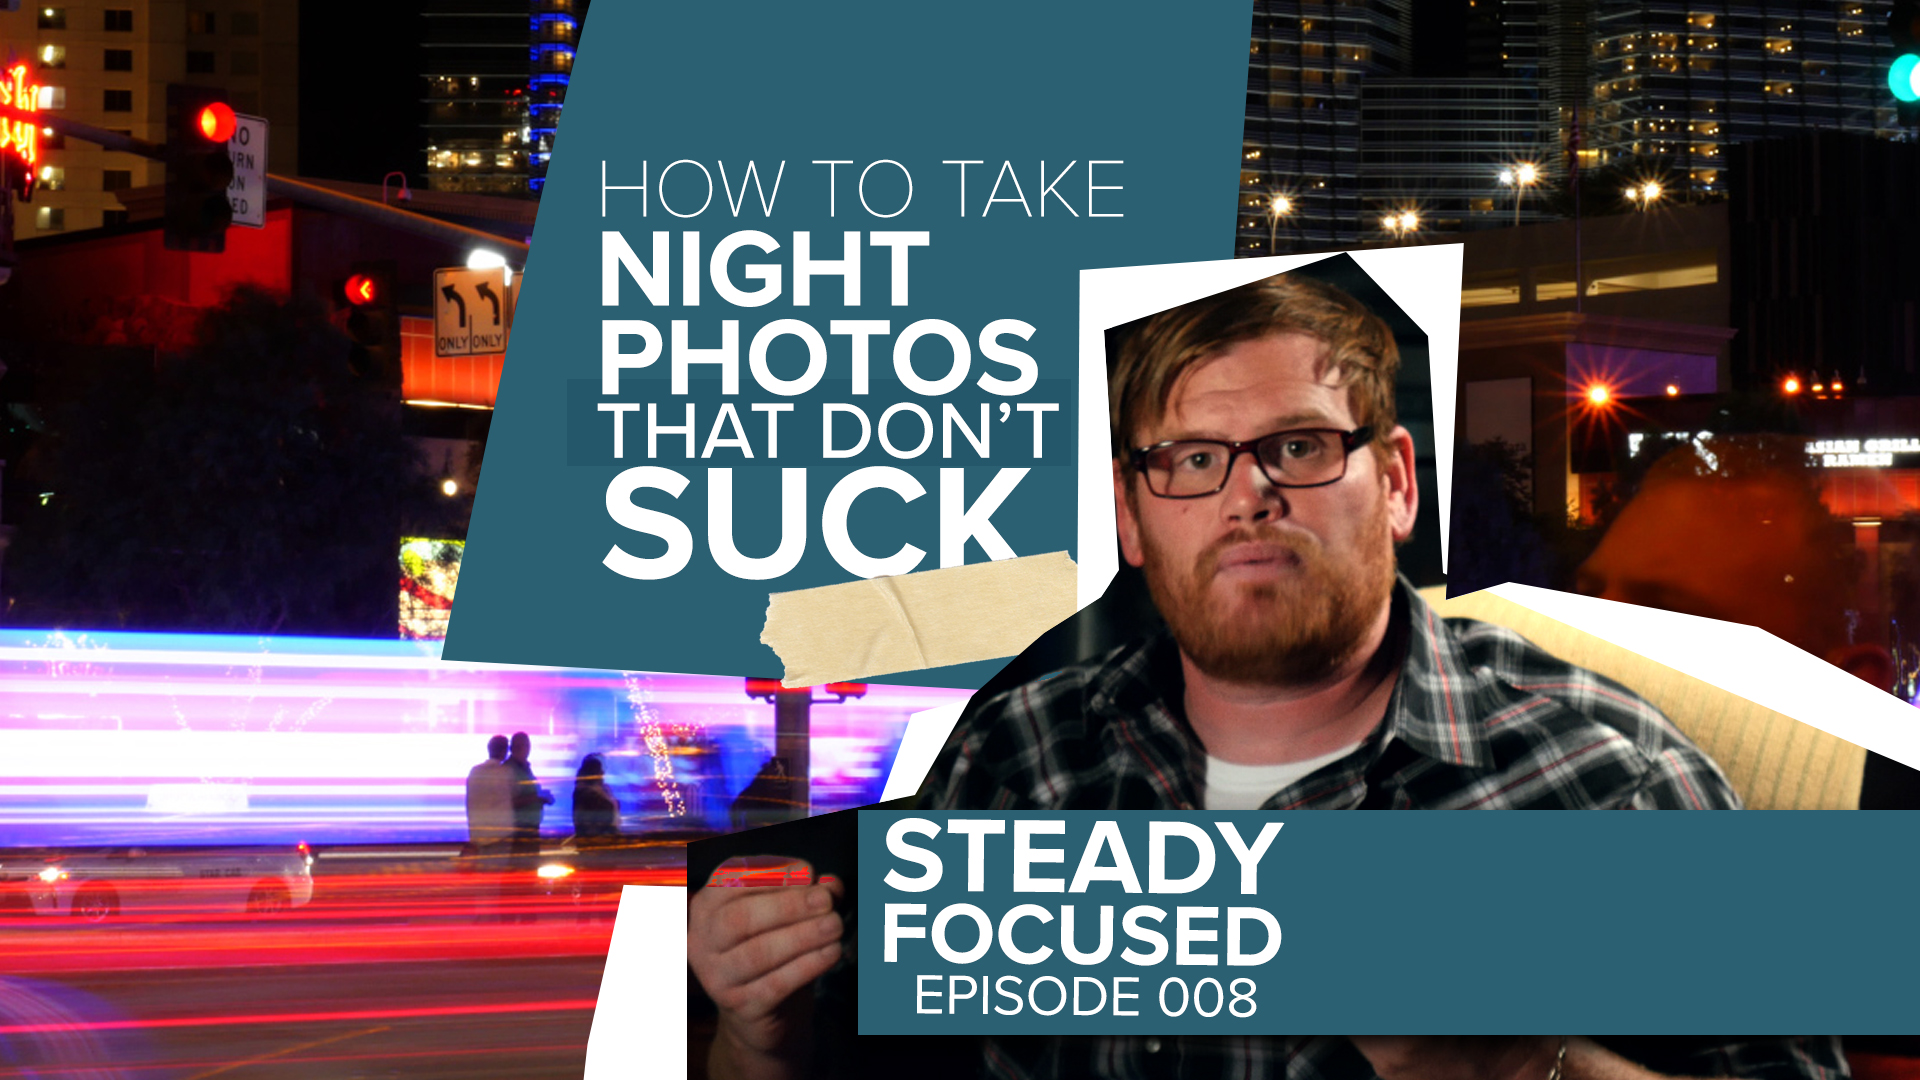 how-take-night-photos-dont-suck-steady-focused